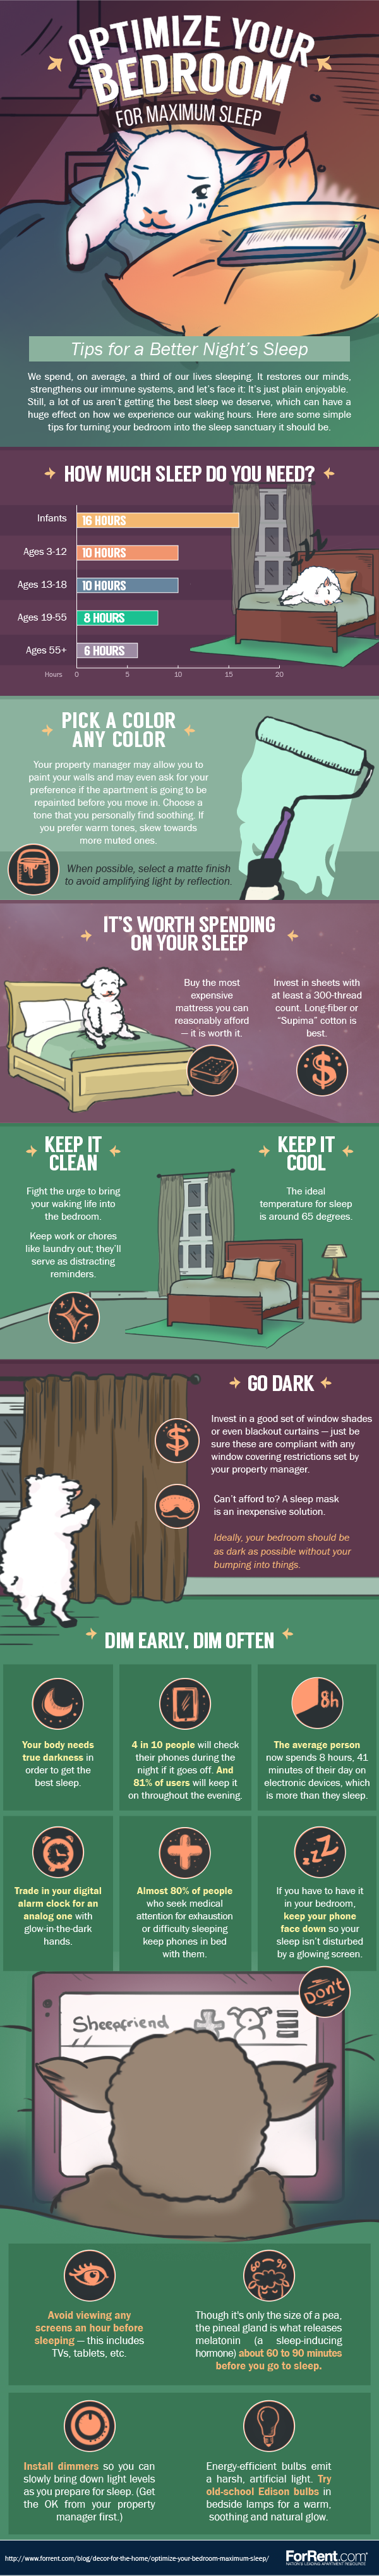 Optimize Your Bedroom for Maximum Sleep #Infographic